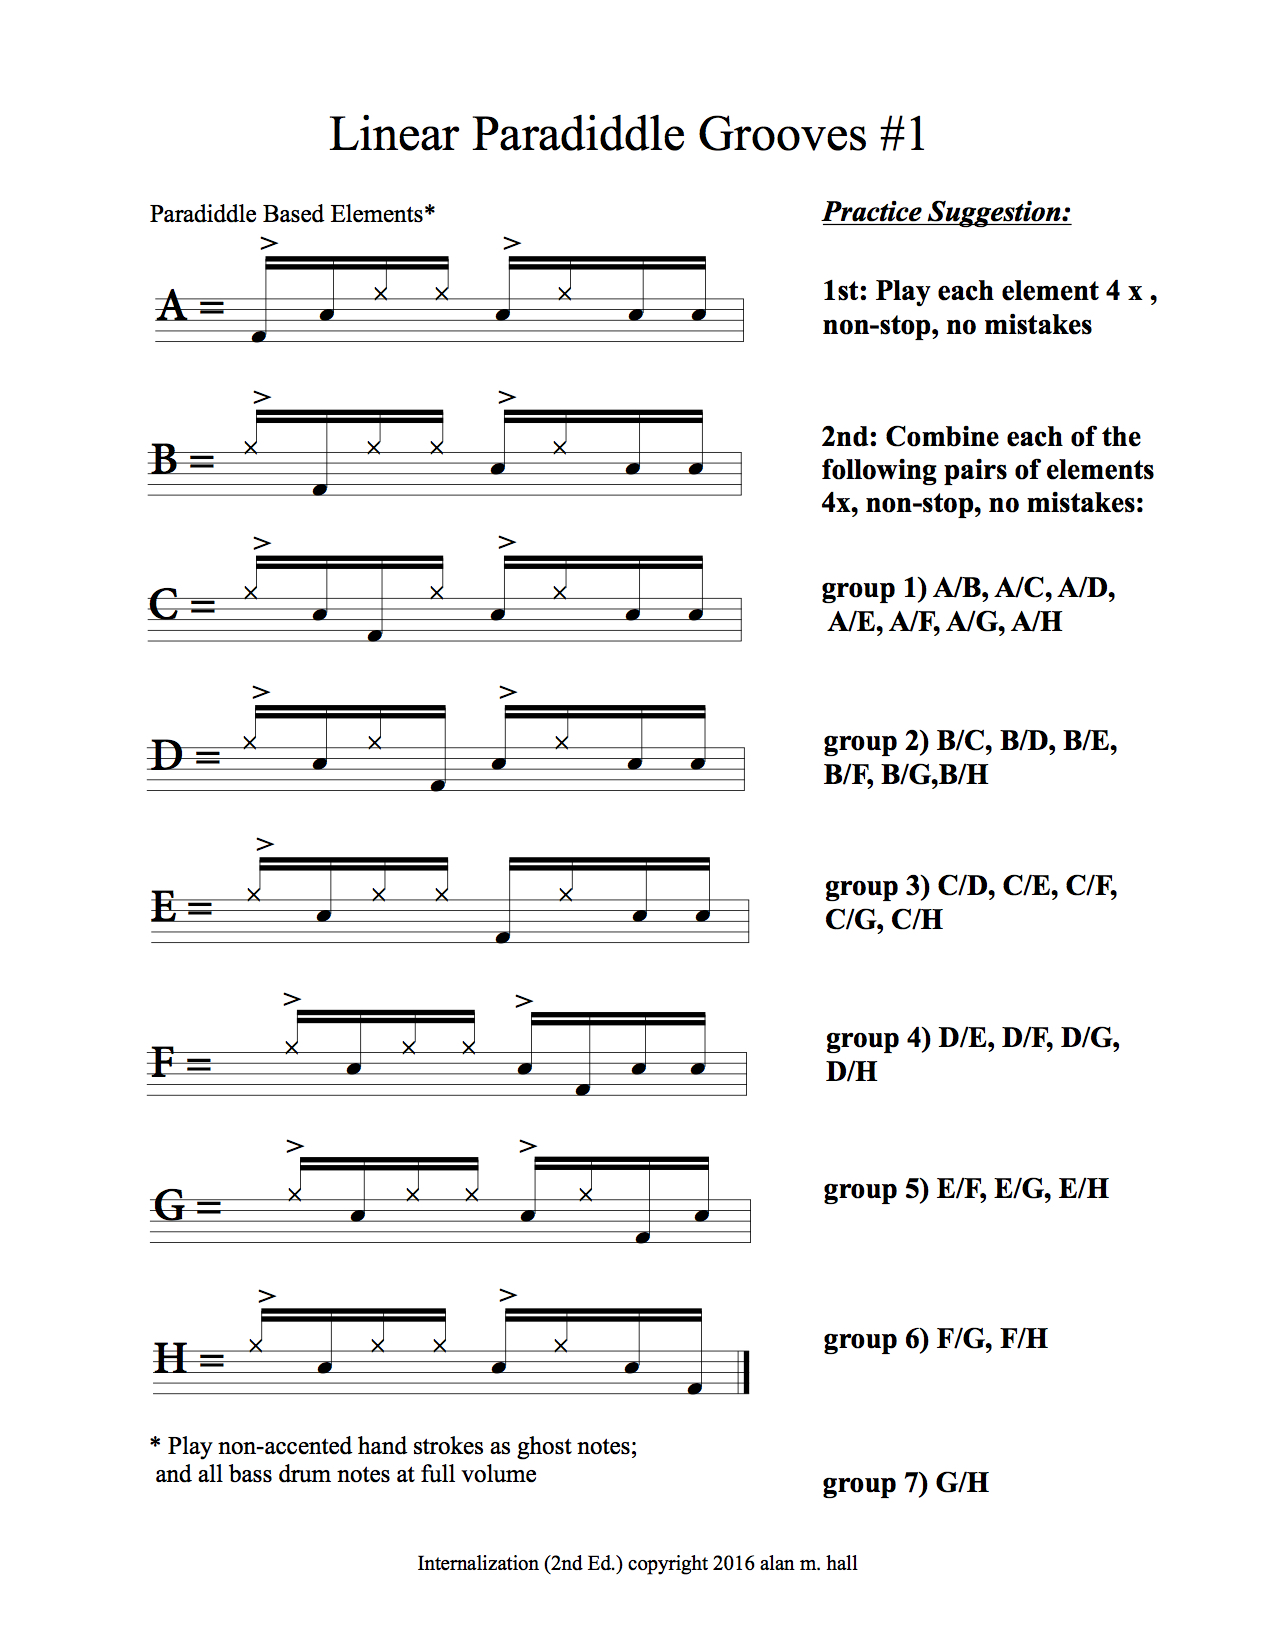 Improved Linear Paradiddle Grooves #1 jpeg..jpg